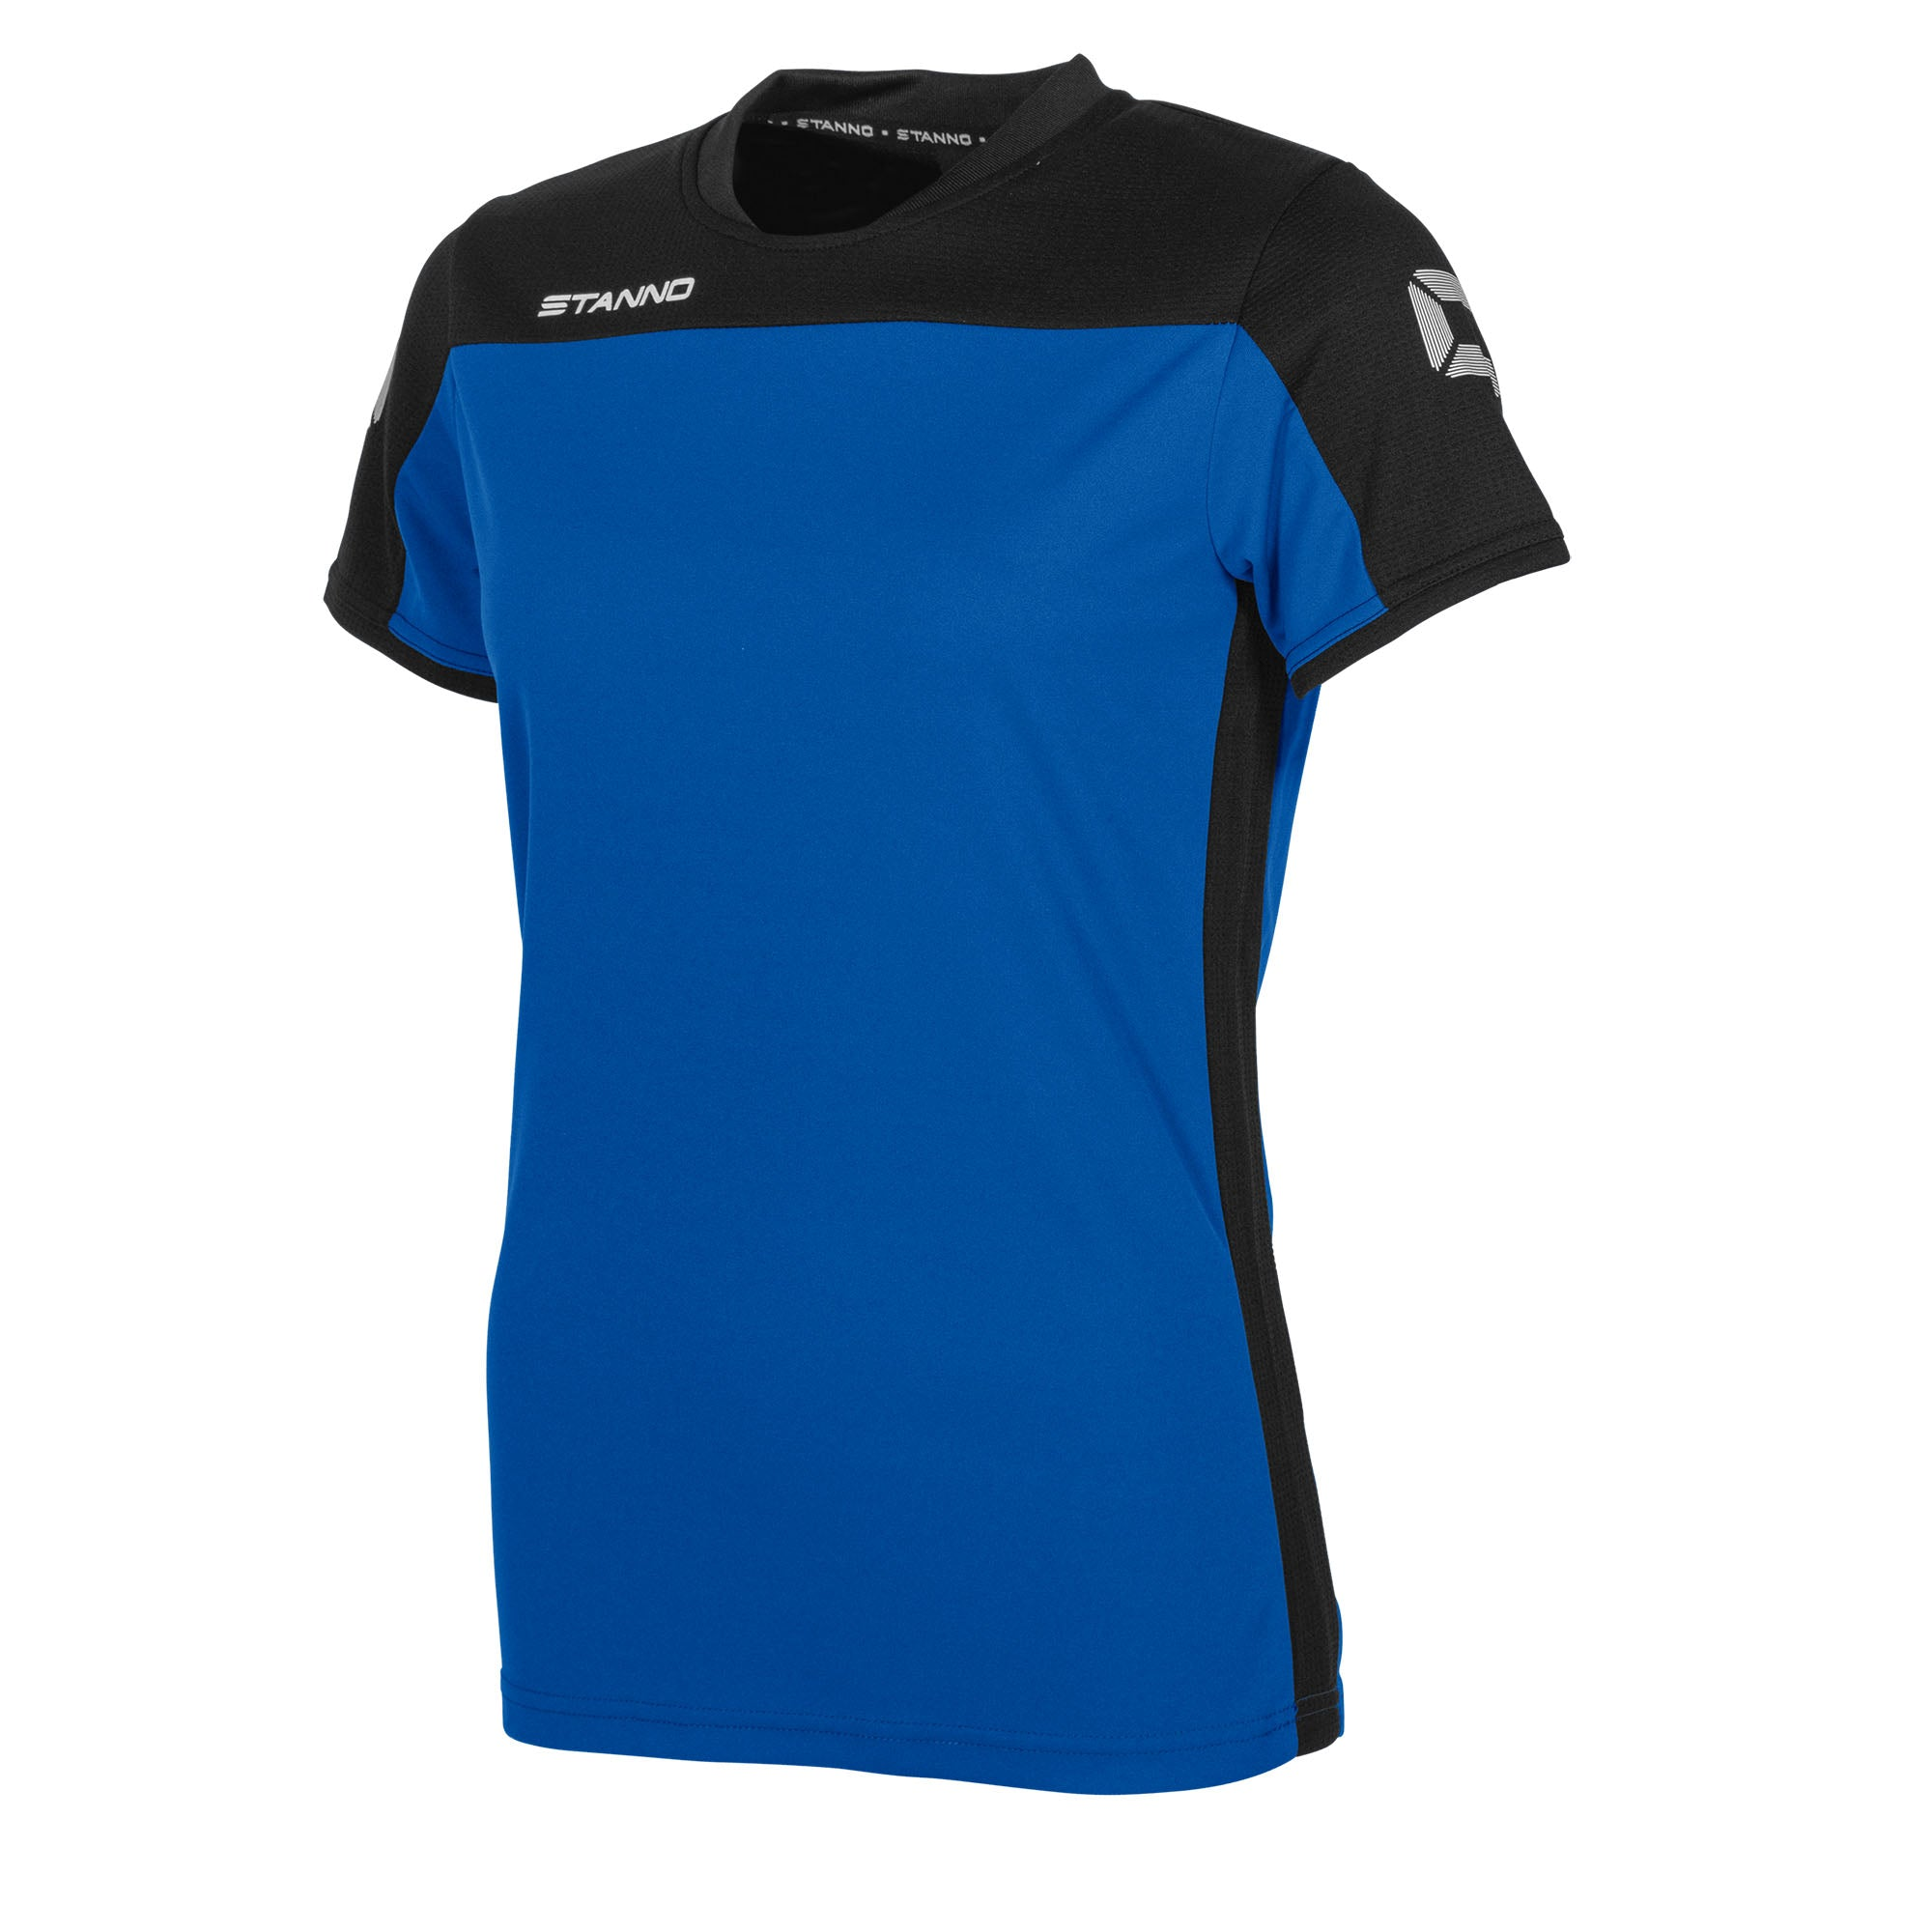 Stanno Pride ladies t-shirt in royal blue, with mesh contrast black shoulder and side panel